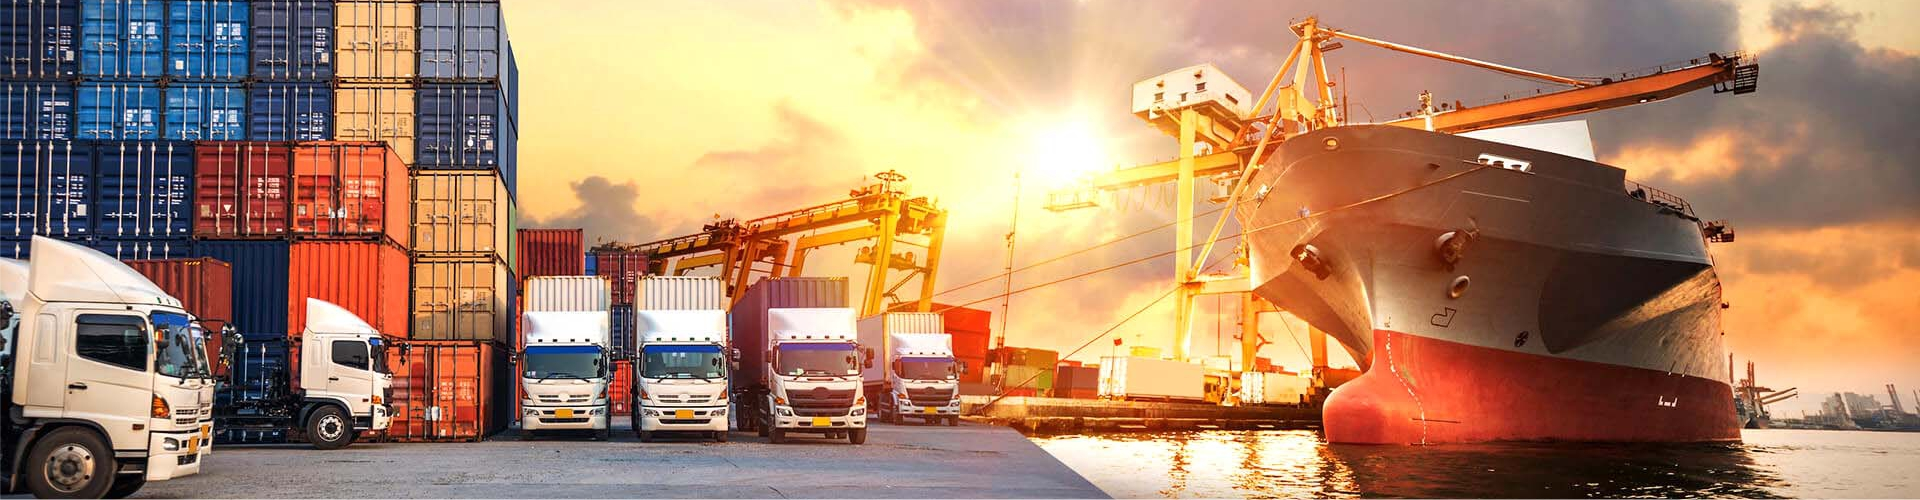 TRANSPORT AND LOGISTICS INDUSTRY CERTIFICATION